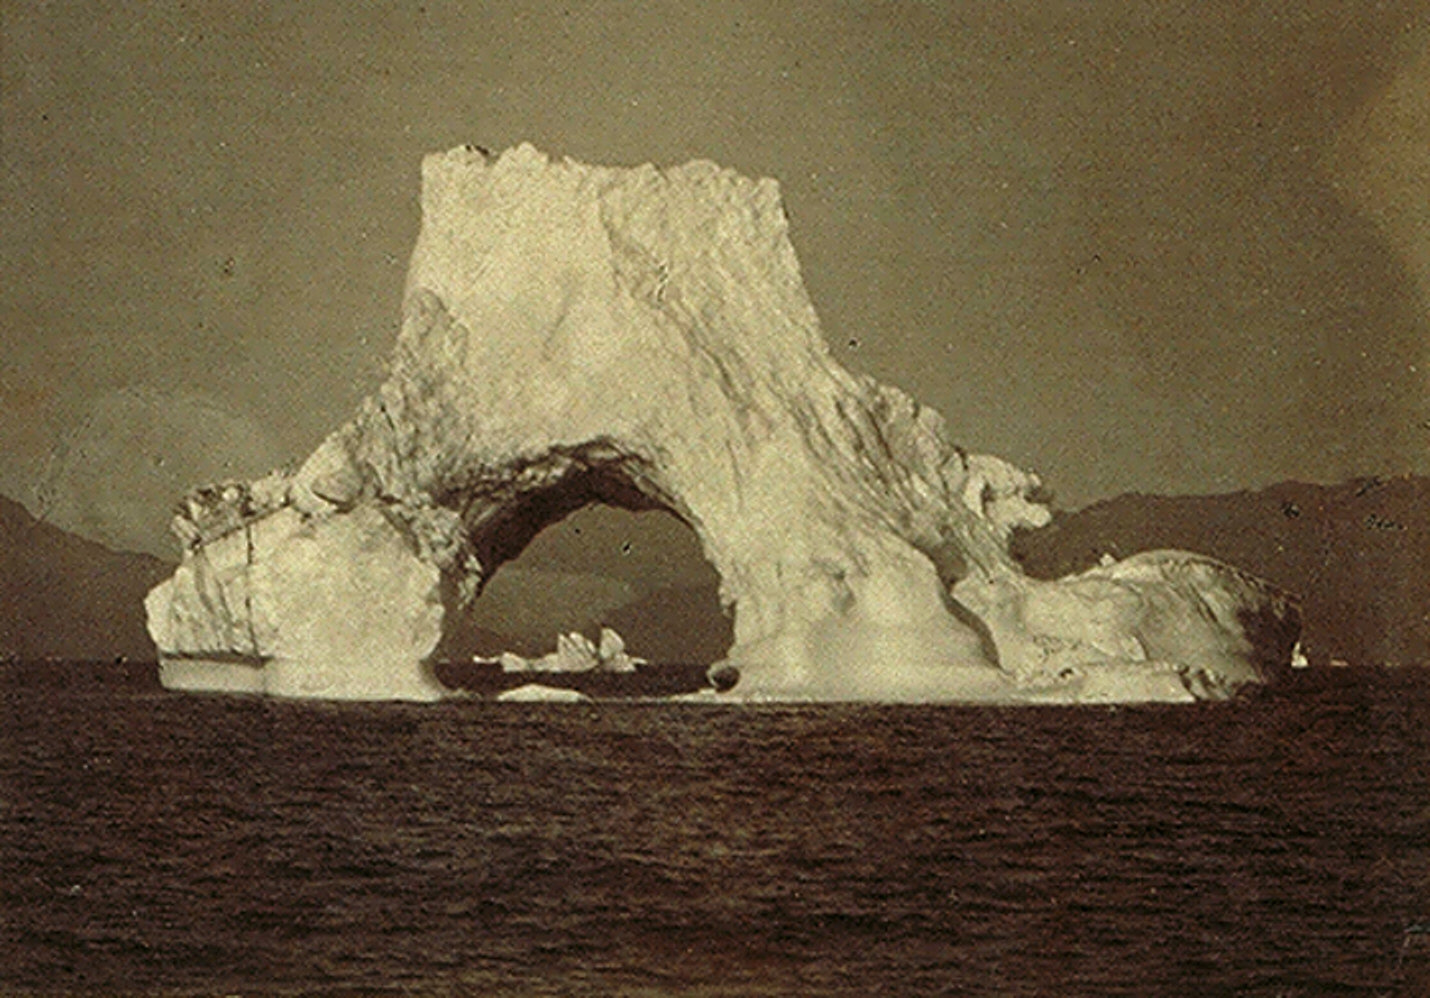 Arctic Regions: Page 33, no. 39, Iceberg with an Arch in It, Which,When Connected with the Glacier, WillGive the Reader to Understand How the Water Flows from the Glacier through these Arches, Causin